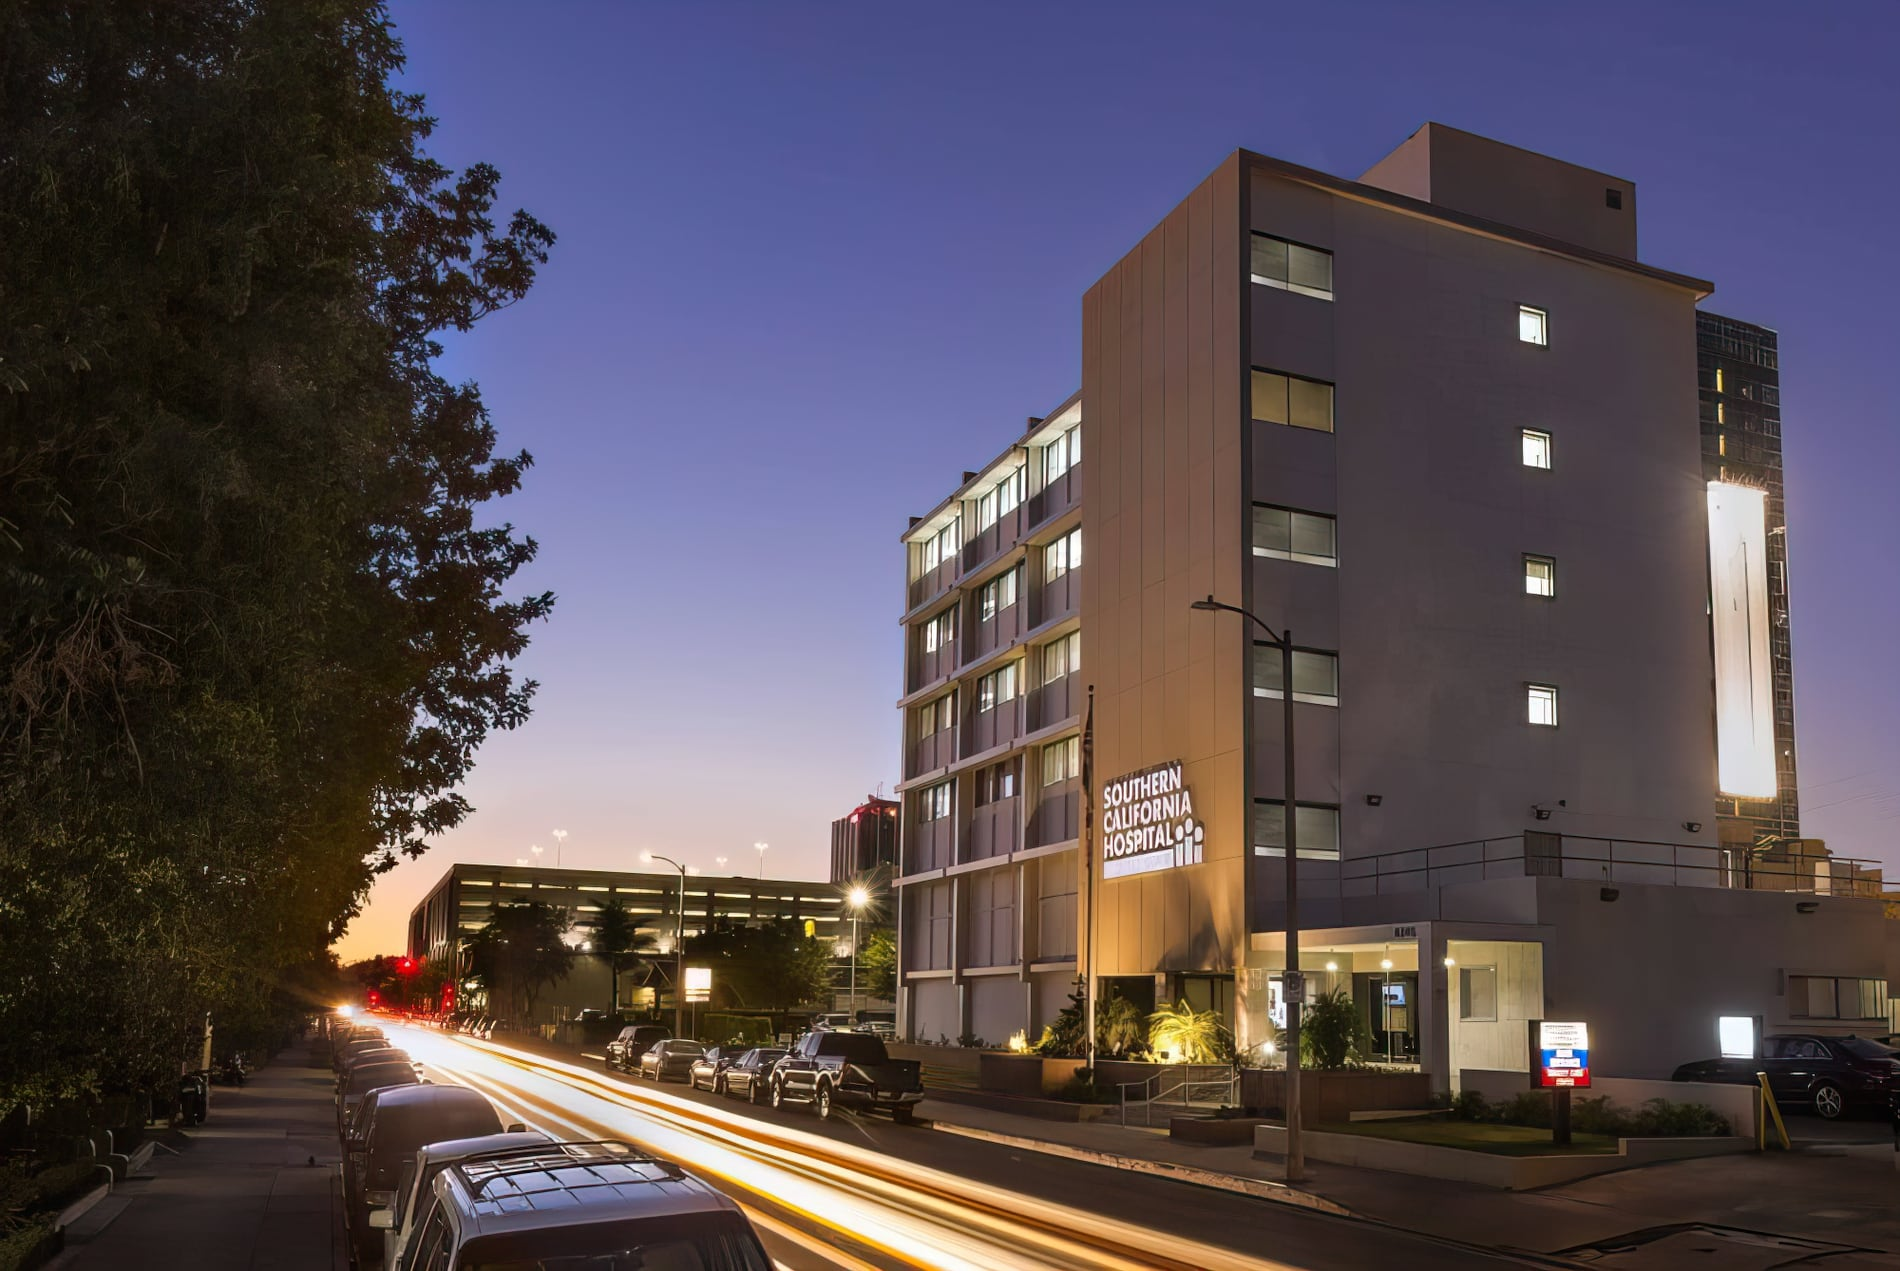 southern california hospital culver city heart institute director cardiologist